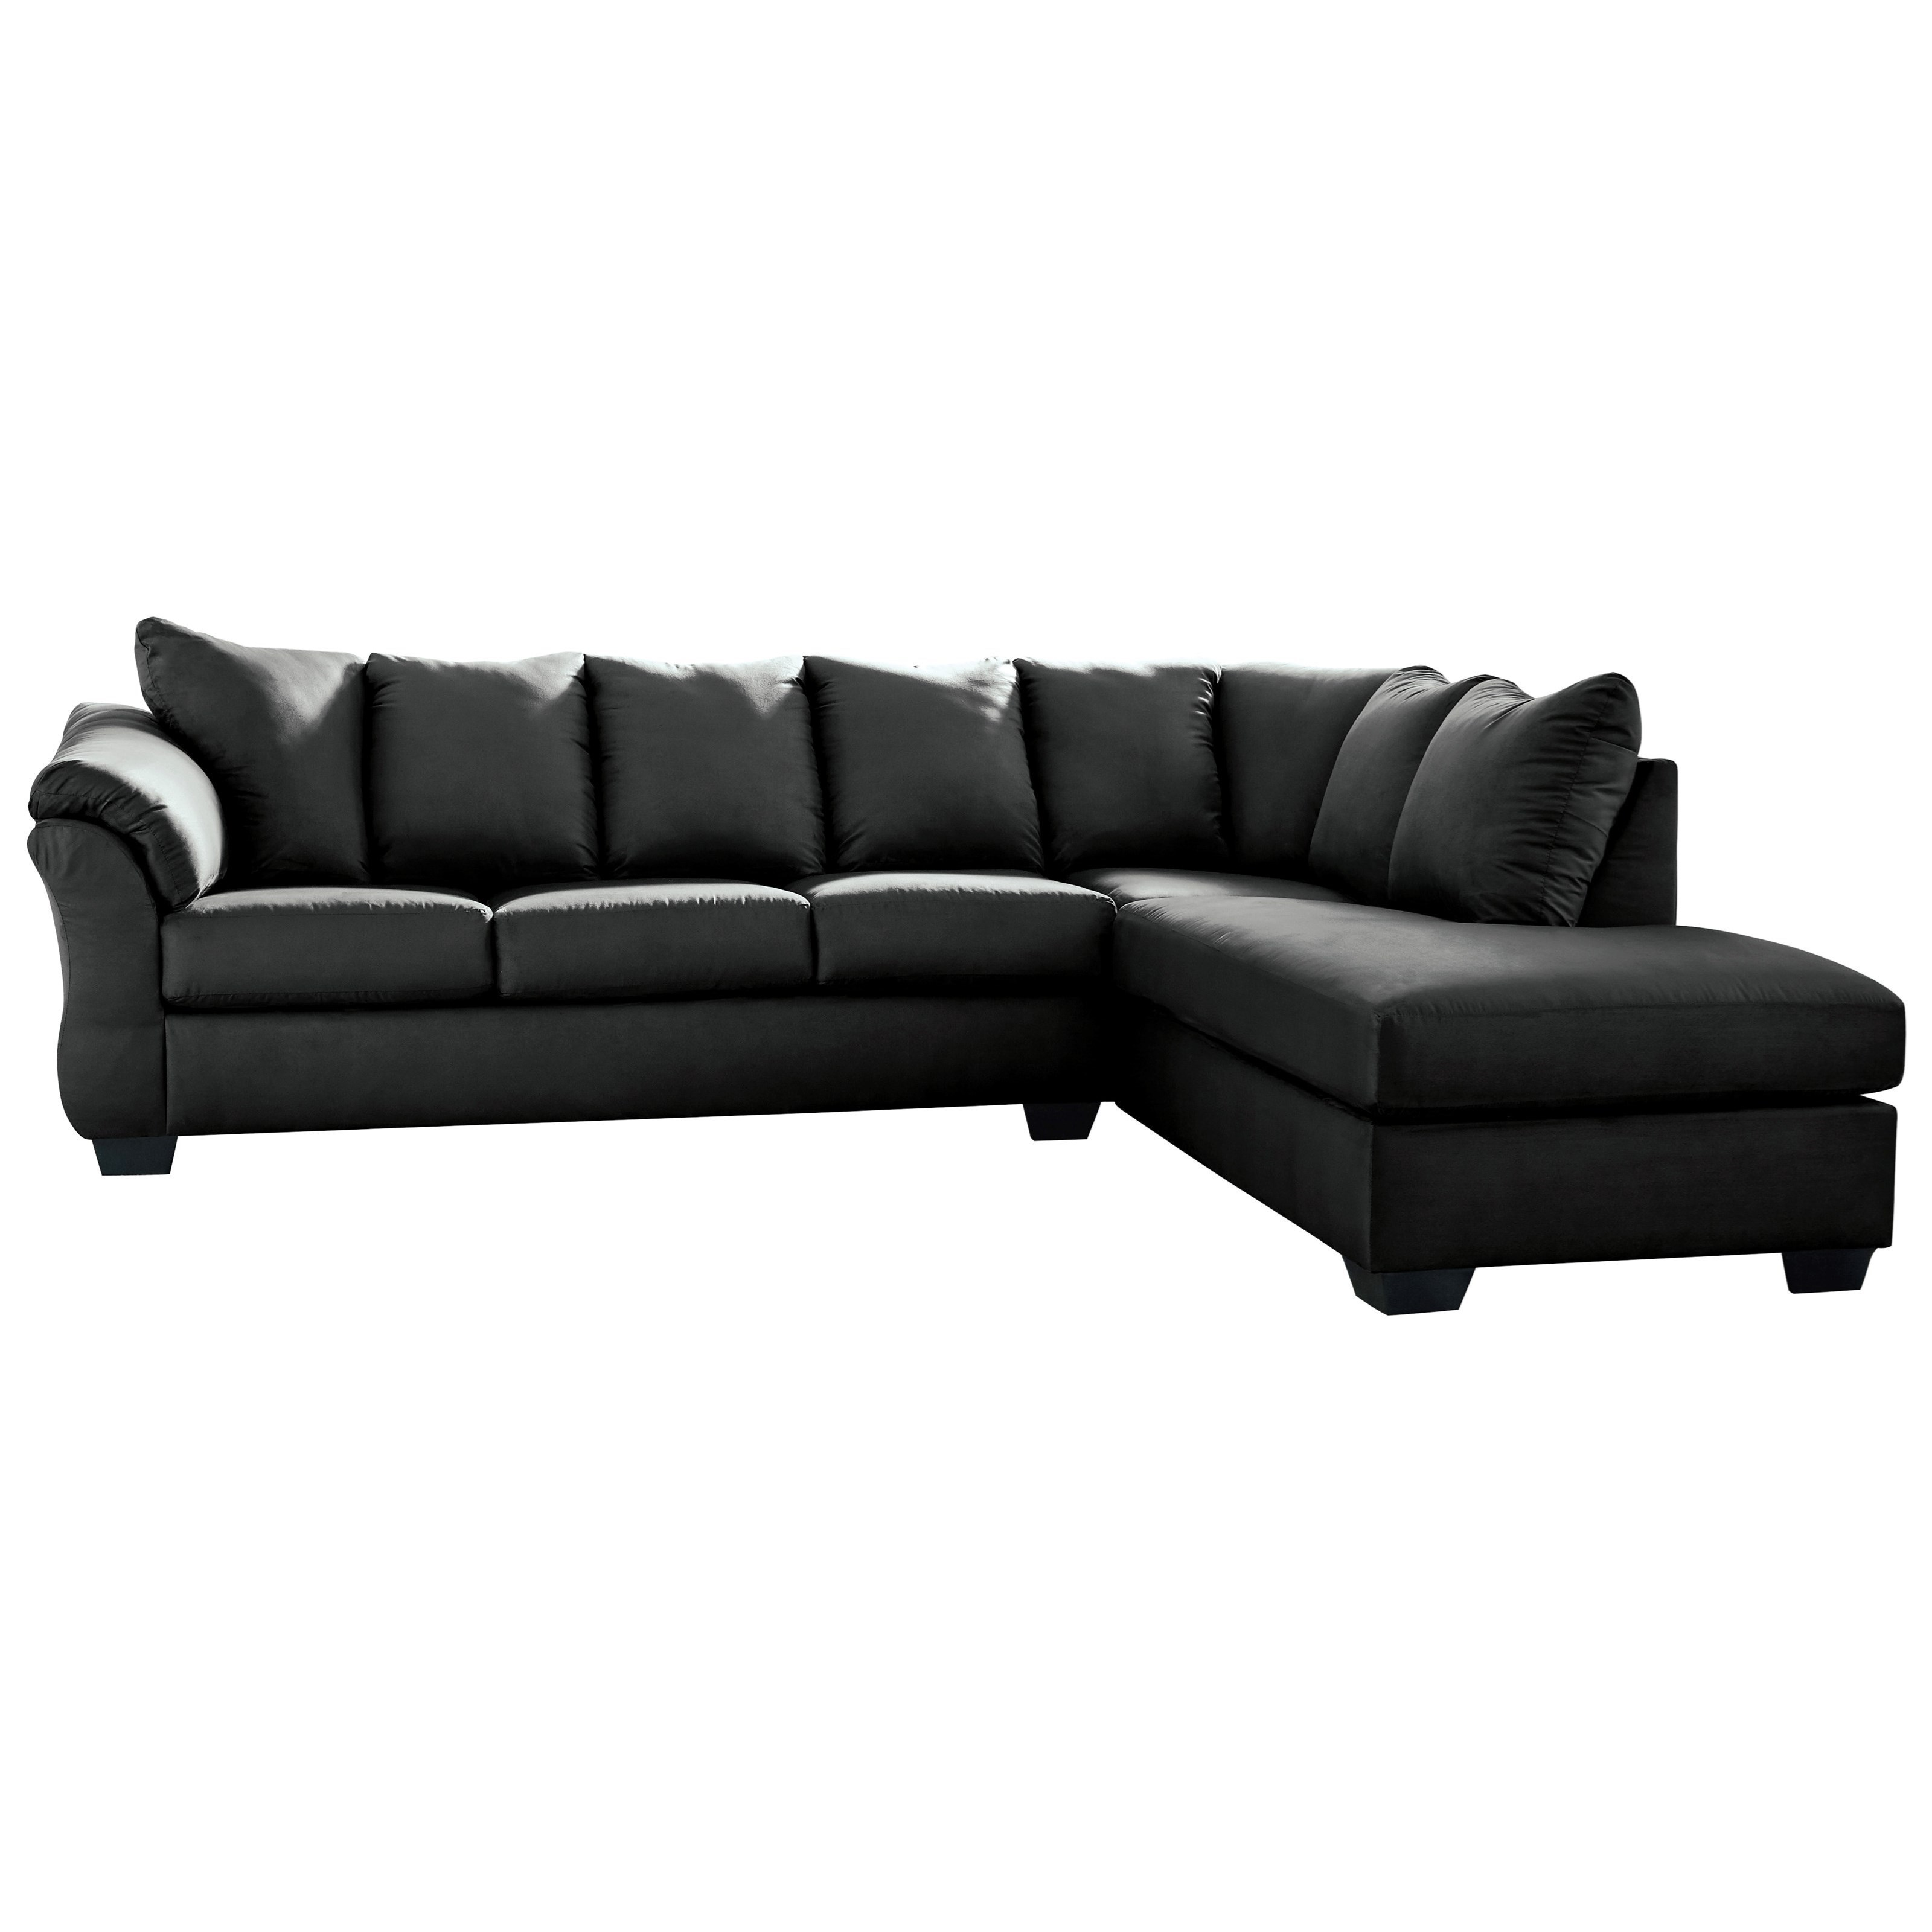 Picture of: Signature Design By Ashley Darcy Black Contemporary 2 Piece Sectional Sofa With Right Chaise Royal Furniture Sectional Sofas